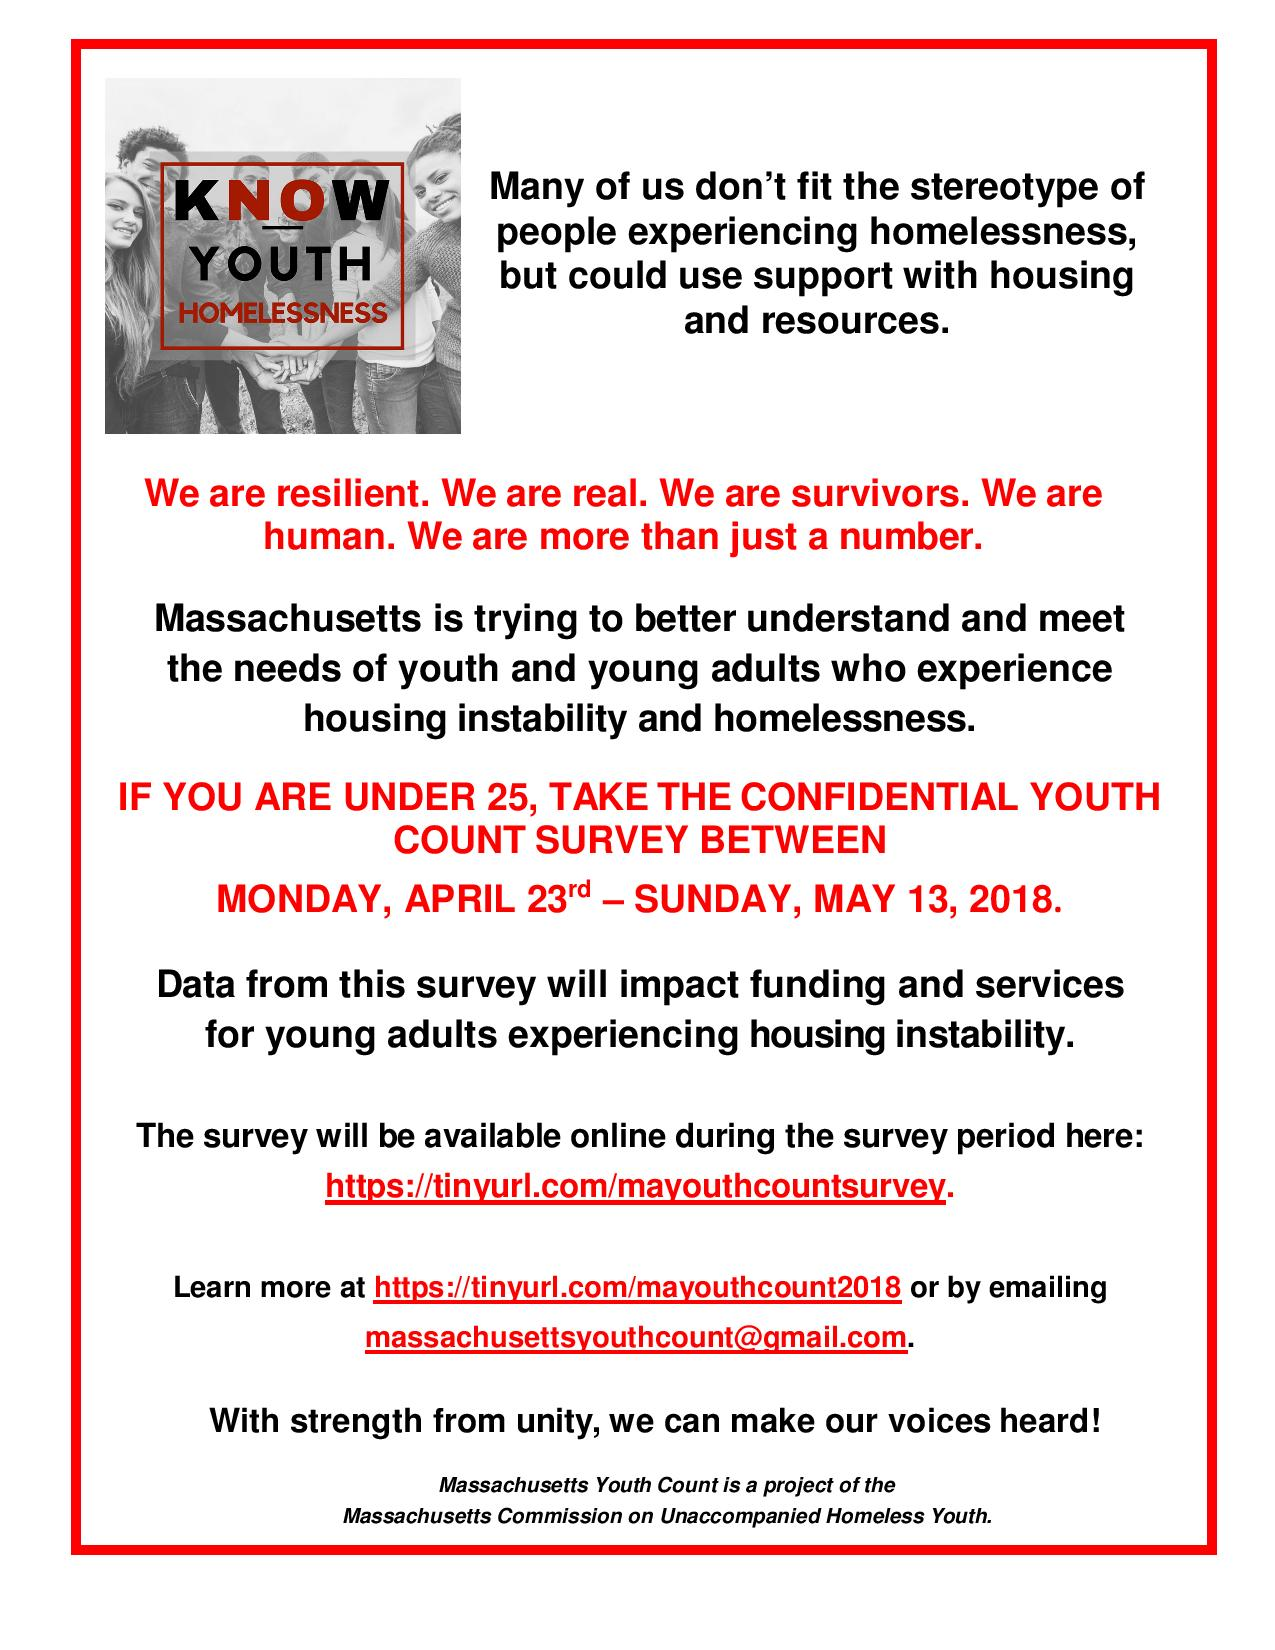 youth count flyer 2018